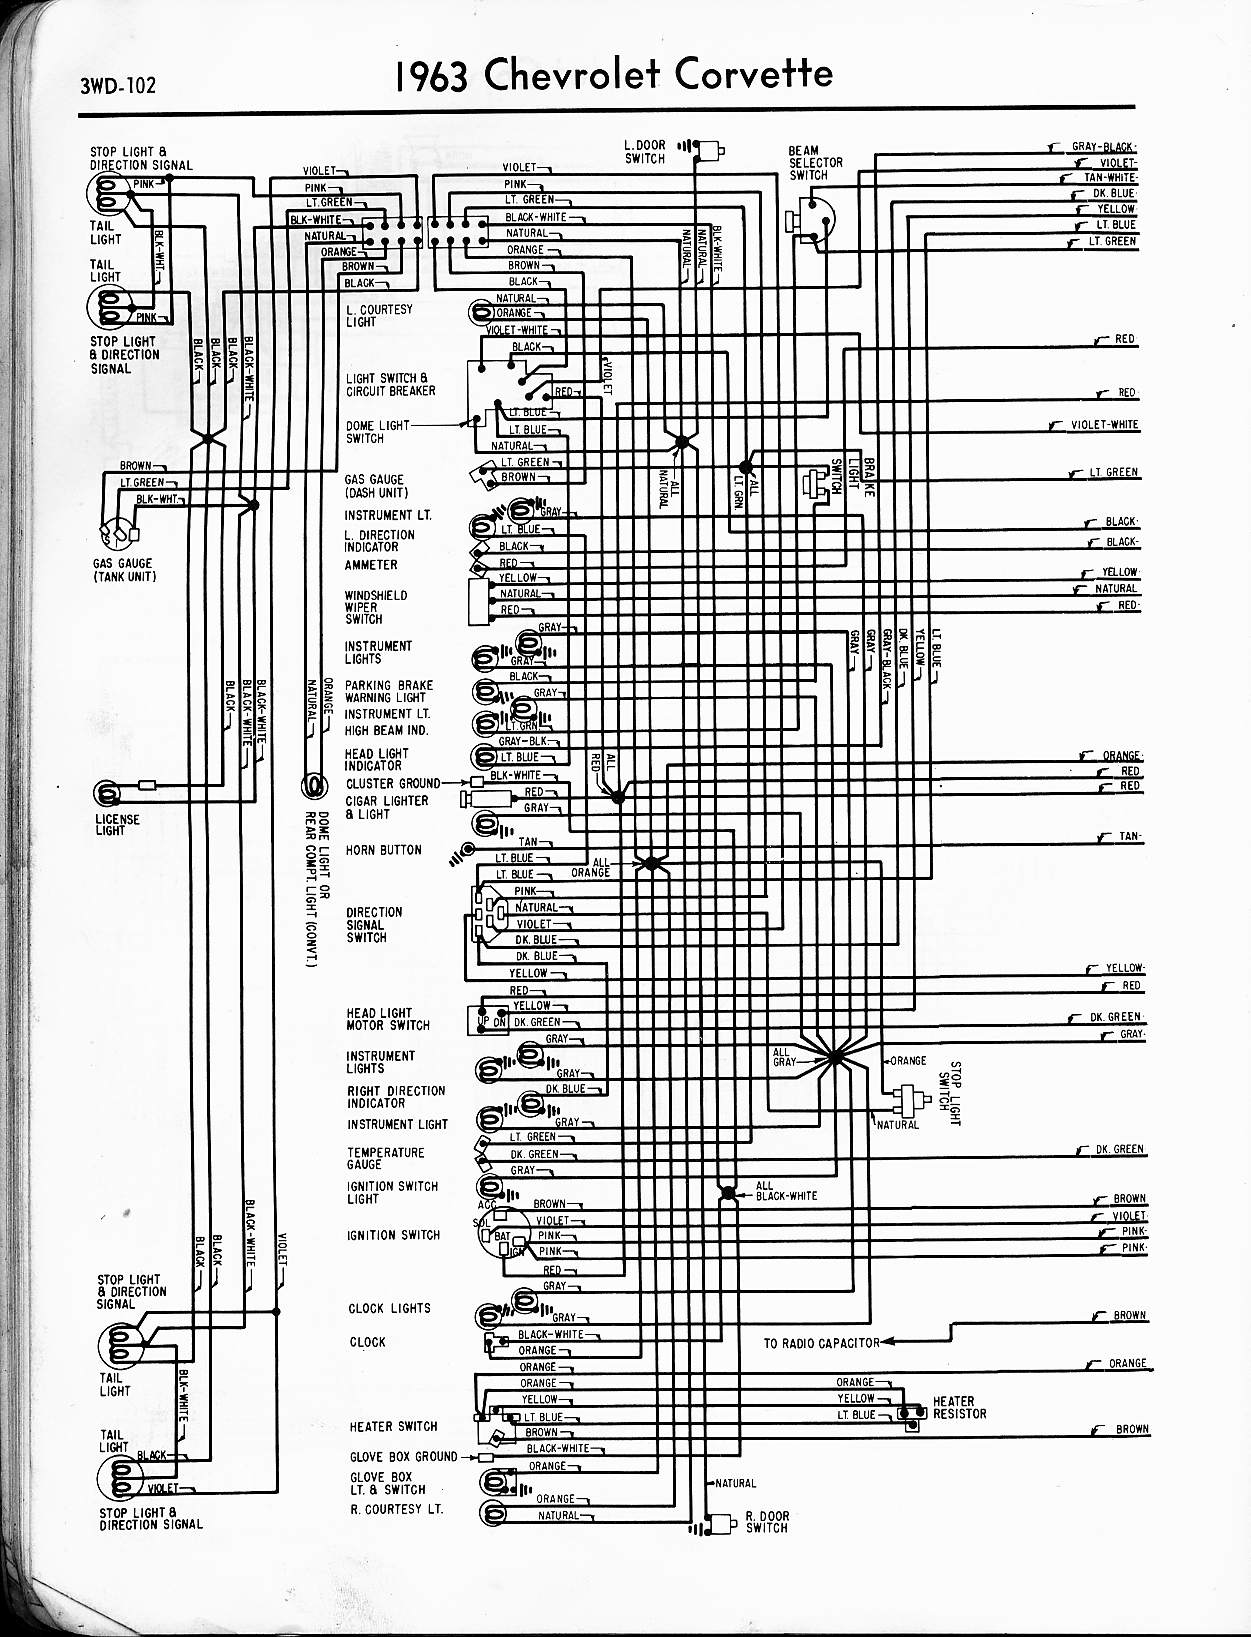 MWireChev63_3WD 102 corvette wiring diagram corvette parts diagram \u2022 wiring diagrams 63 chevy c10 wiring harness at fashall.co